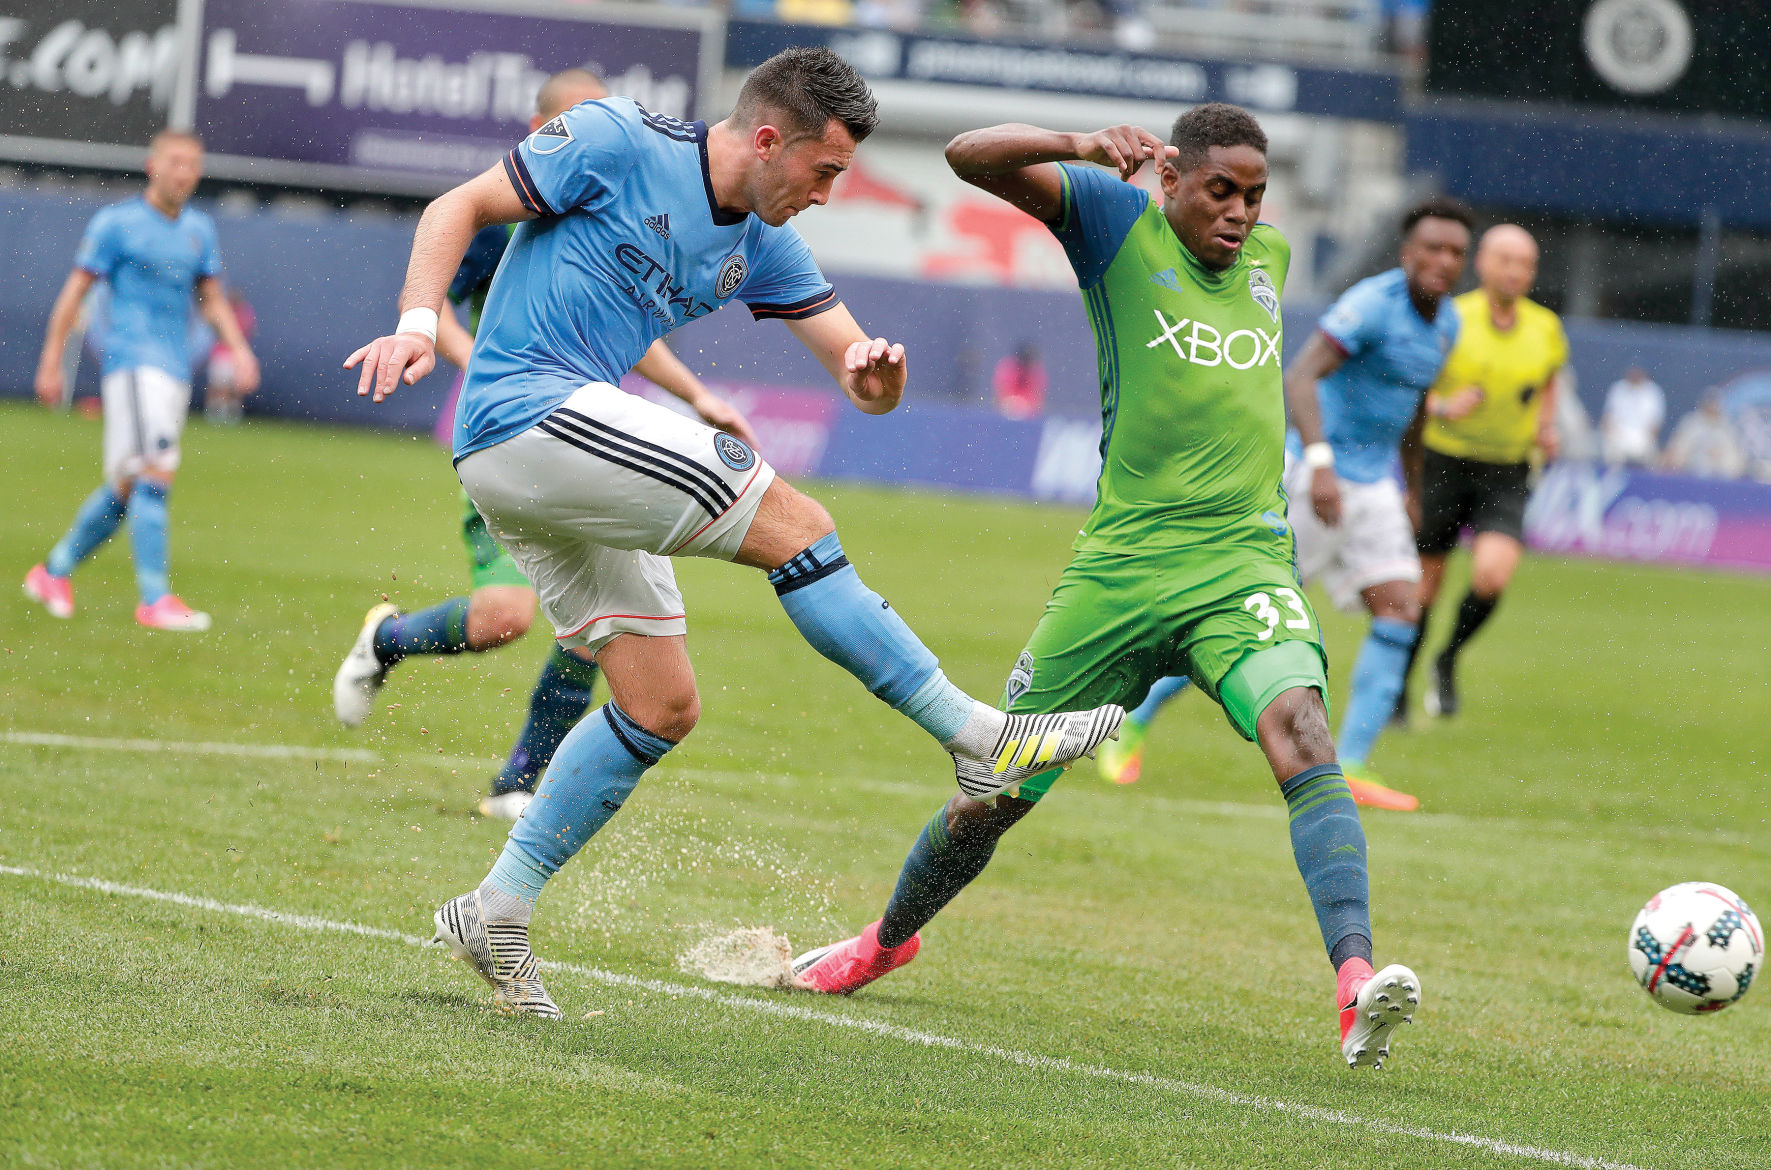 Sounders: Joevin Jones leaves club to join TT squad